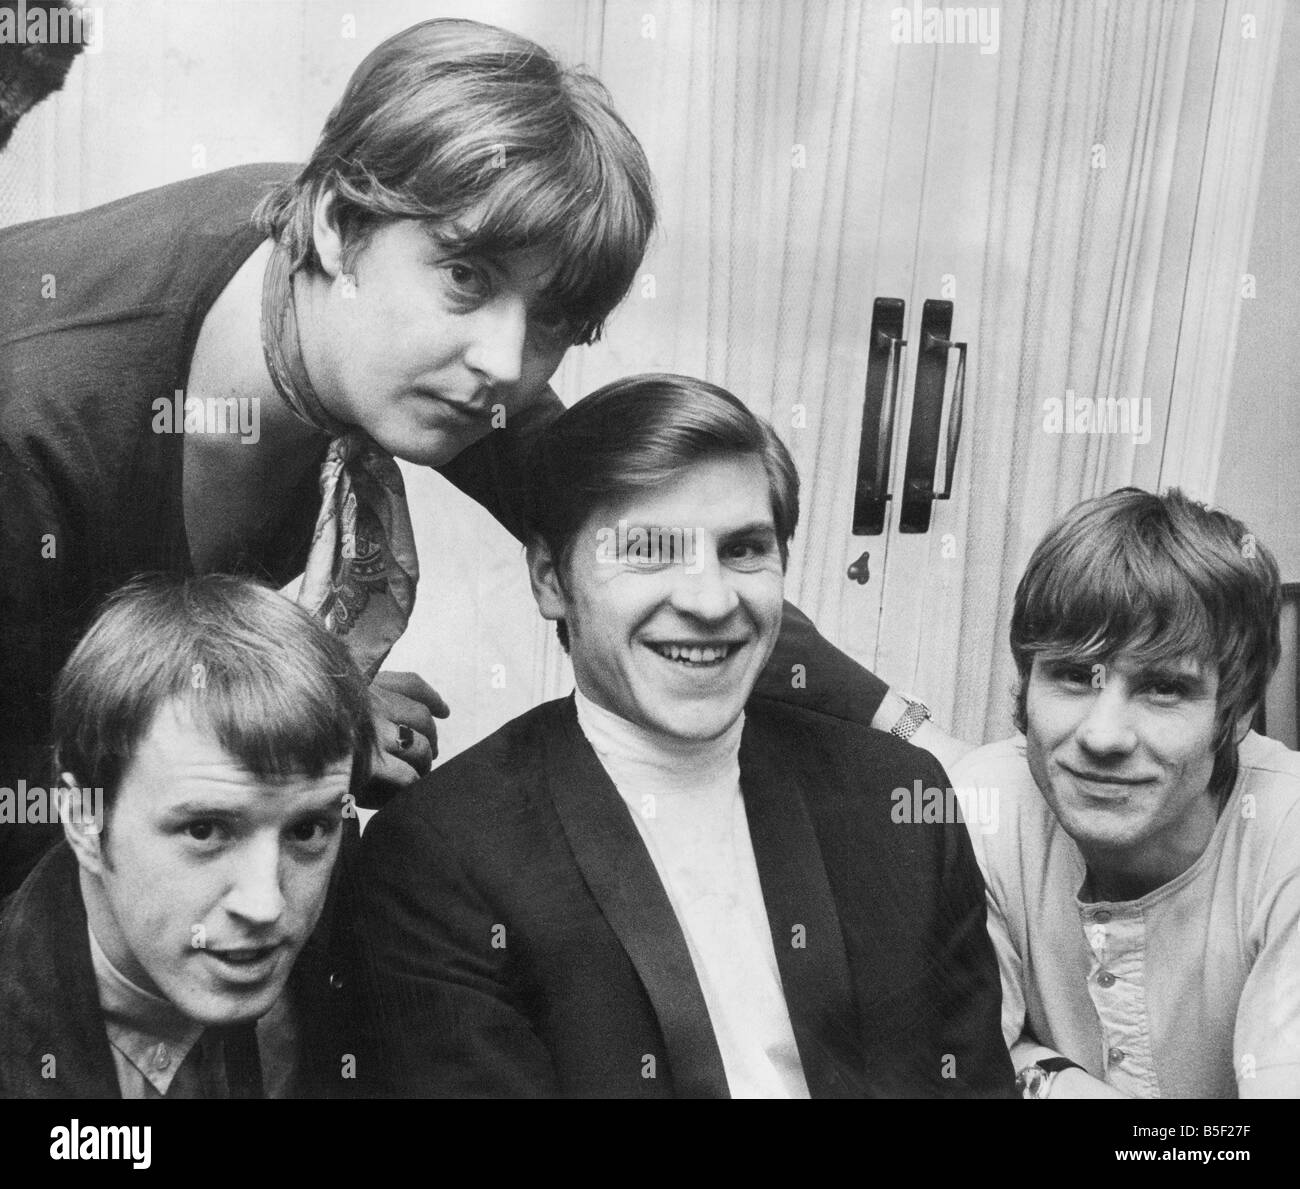 Image of: Burdon Alan Pop Group The Animals In Their Dressing Room At Newcastle City Hall To John Steel Chas Chandler Alan Price And Hilton Valentine 22 12 68 Getty Images Pop Group The Animals In Their Dressing Room At Newcastle City Hall